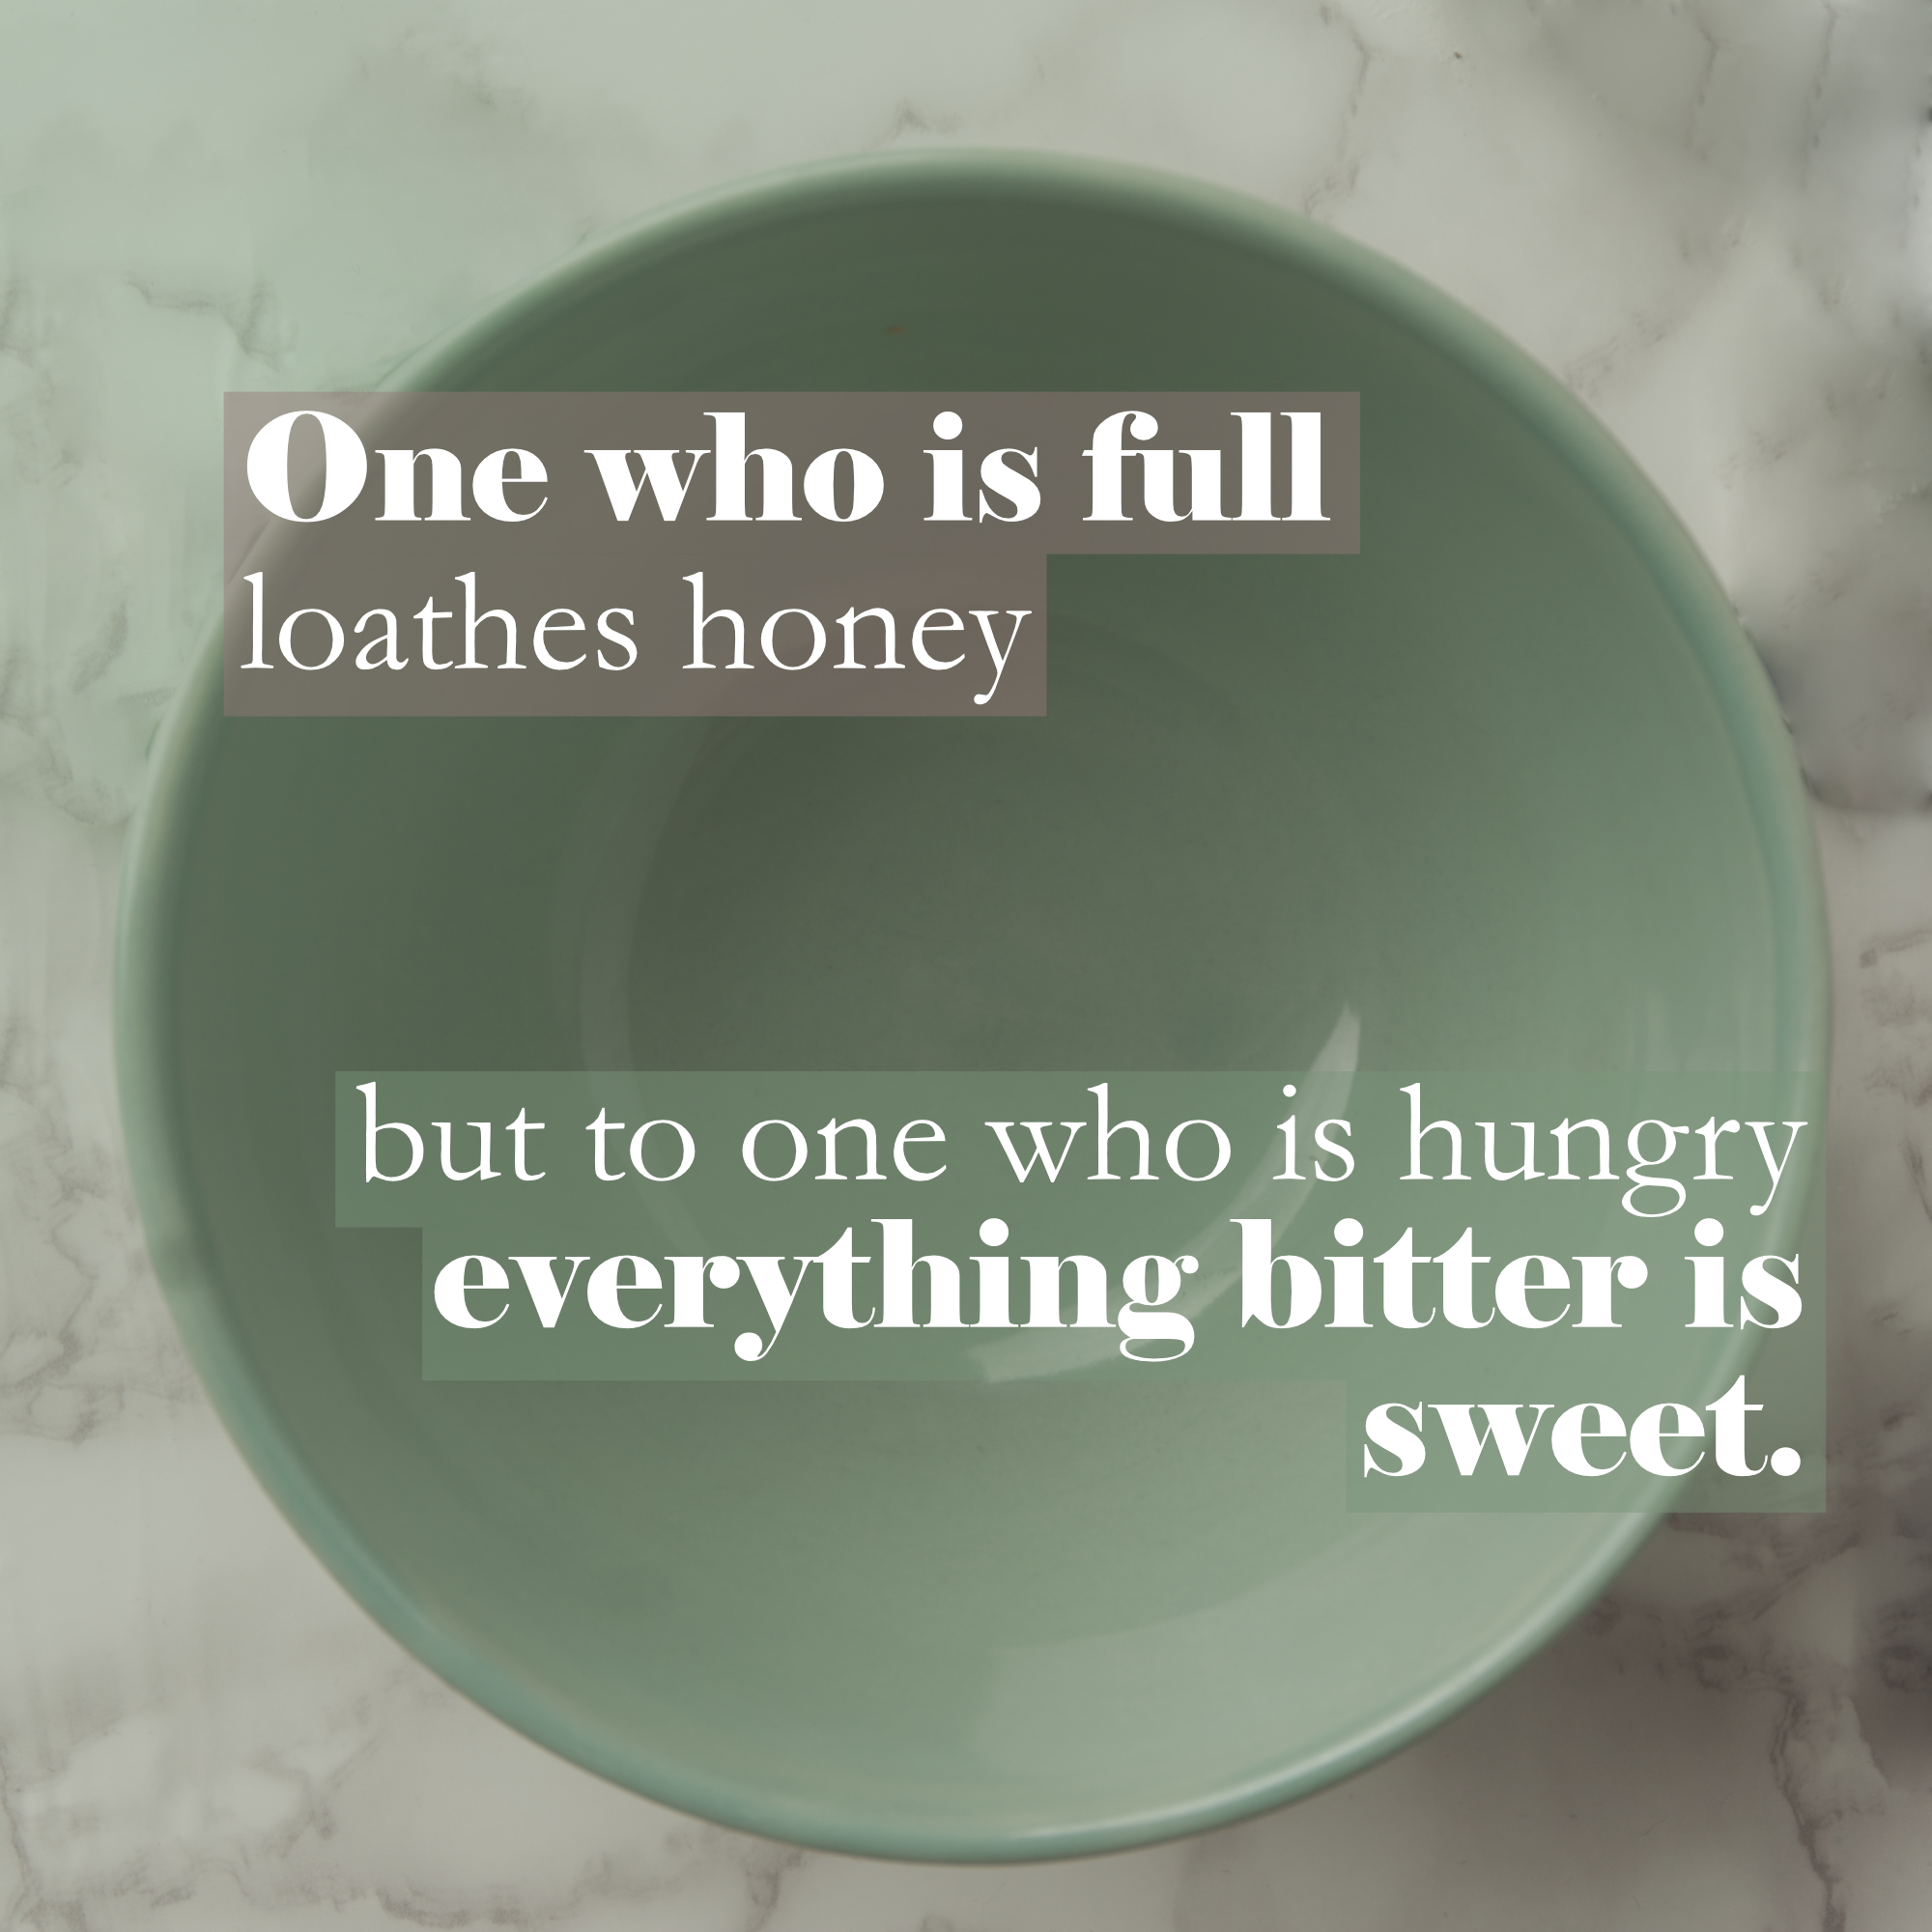 An empty bowl with a quote from Proverbs 27:7 - One who is full loathes honey, but to one who is hungry everything bitter is sweet.